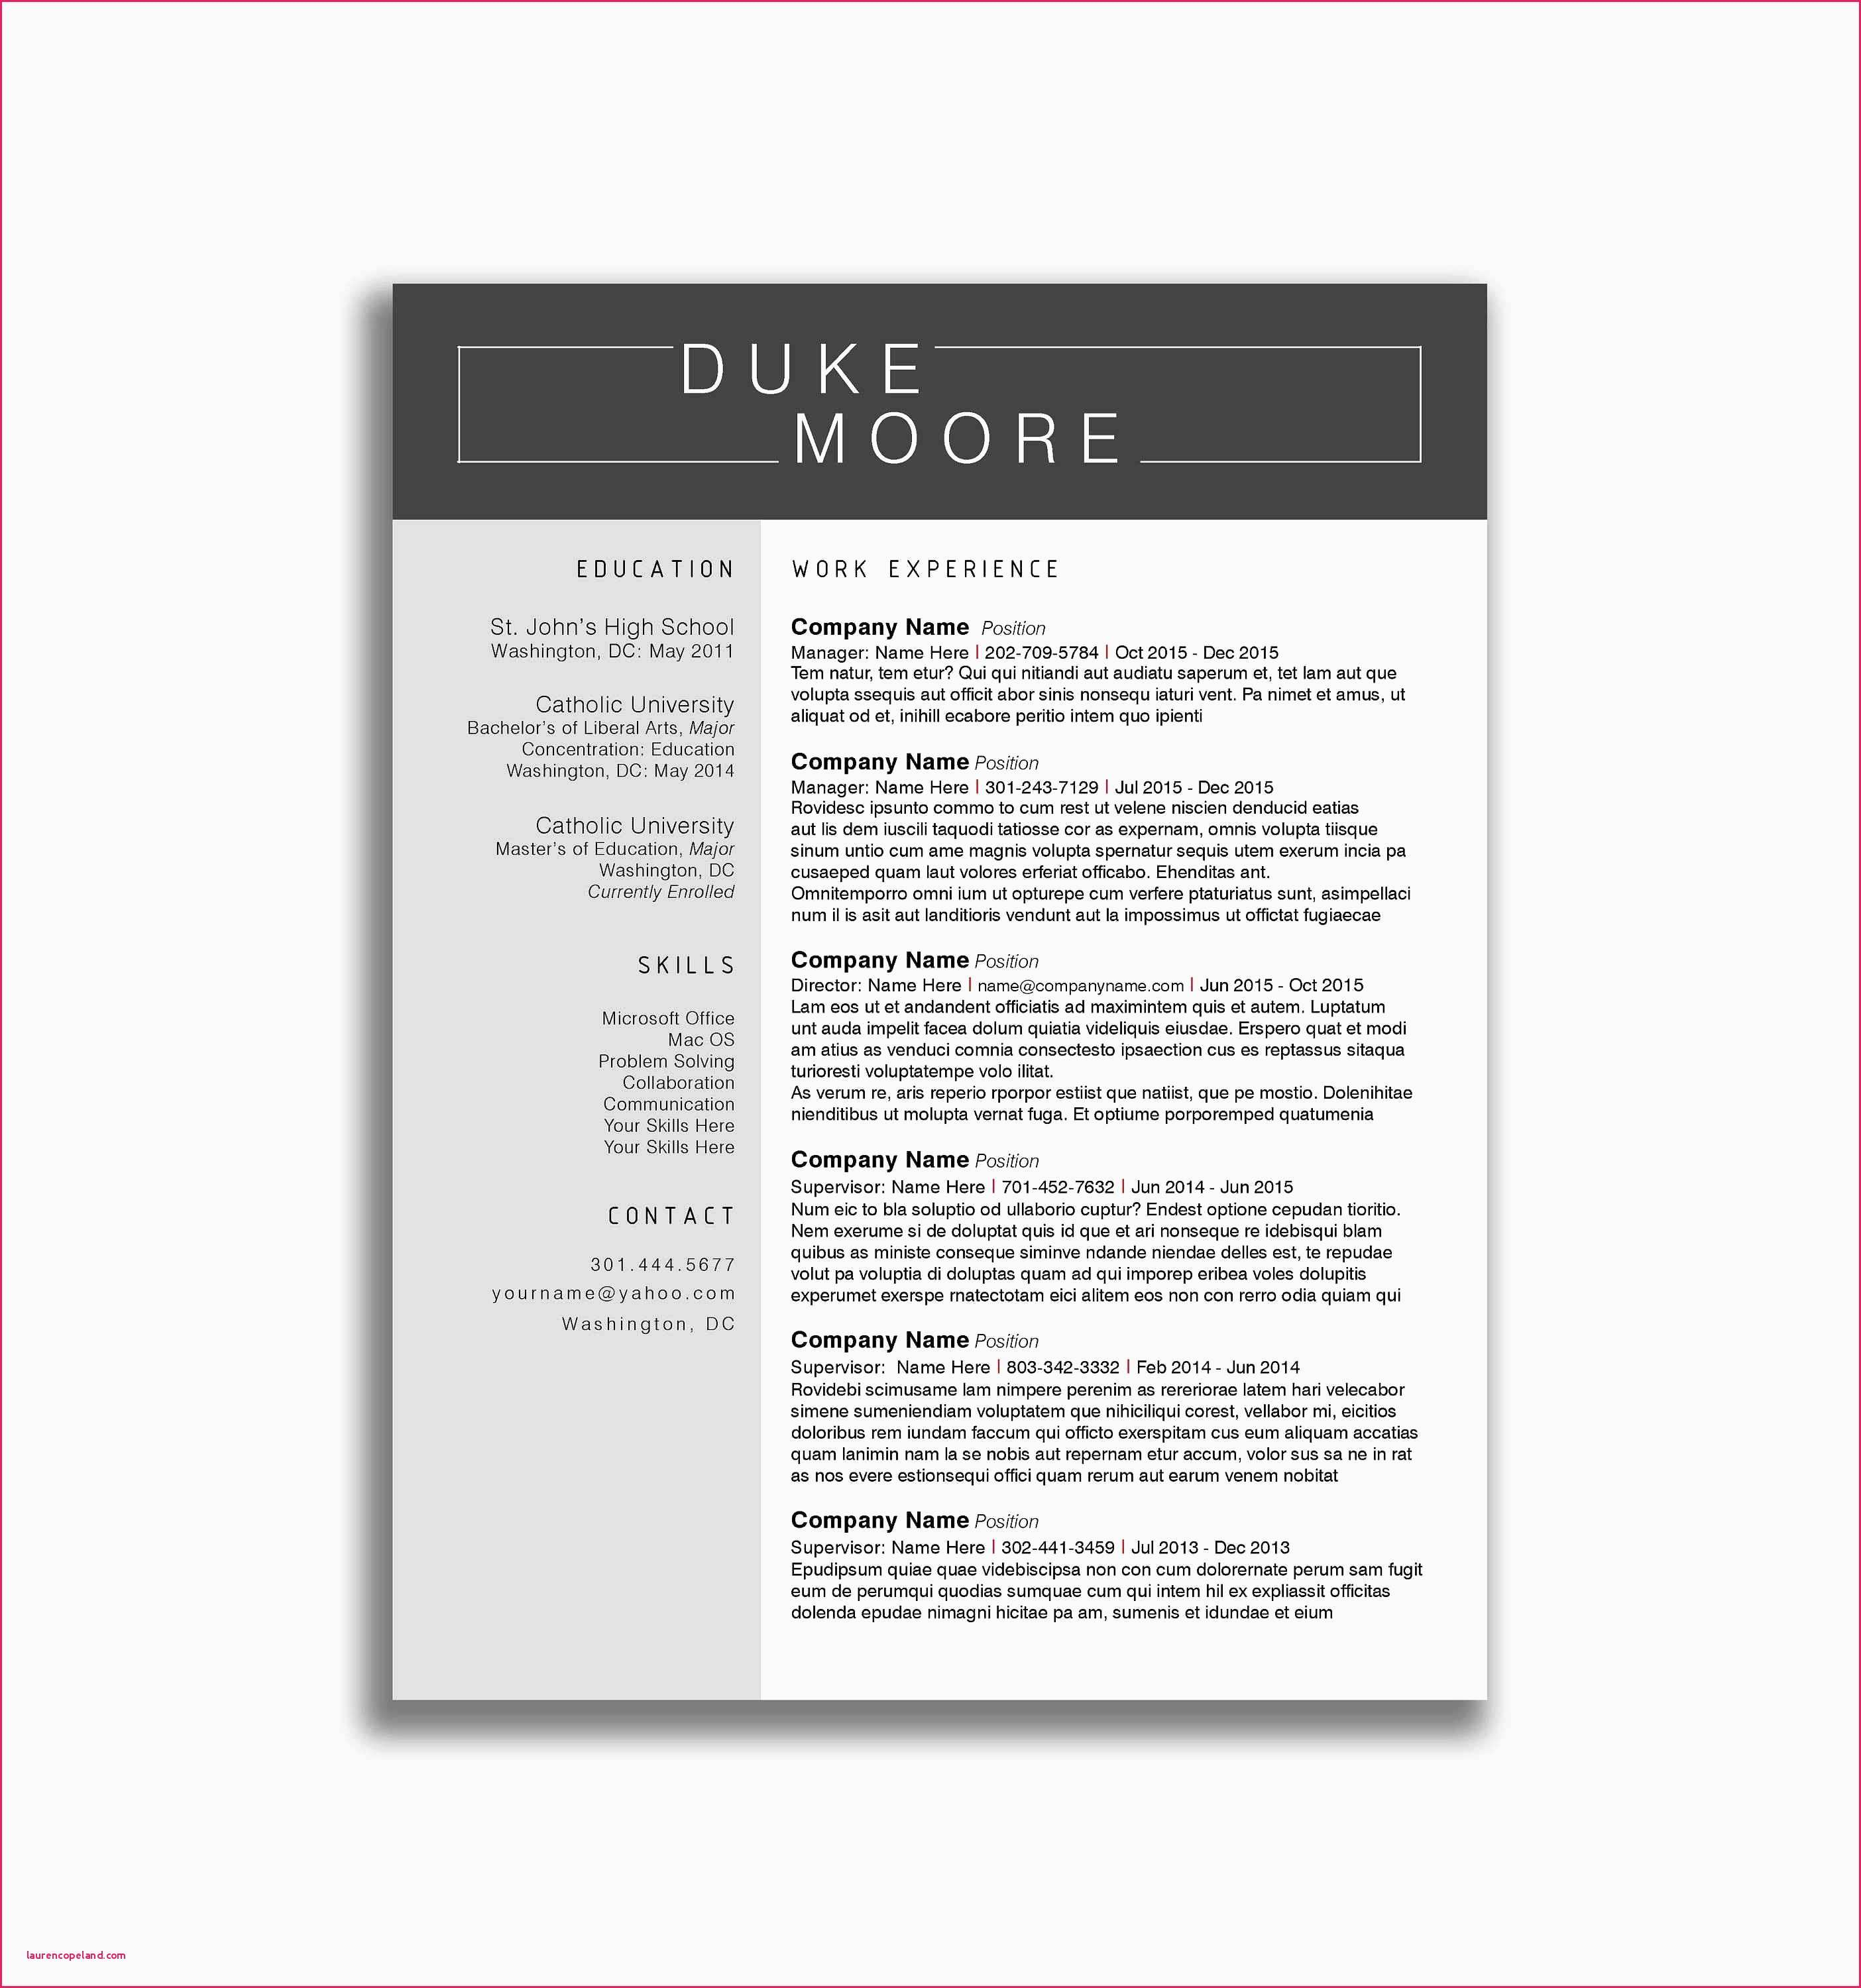 Google Docs Resume Template Reddit - Google Docs Lebenslauf Vorlage Beautiful Cv Template Google Docs